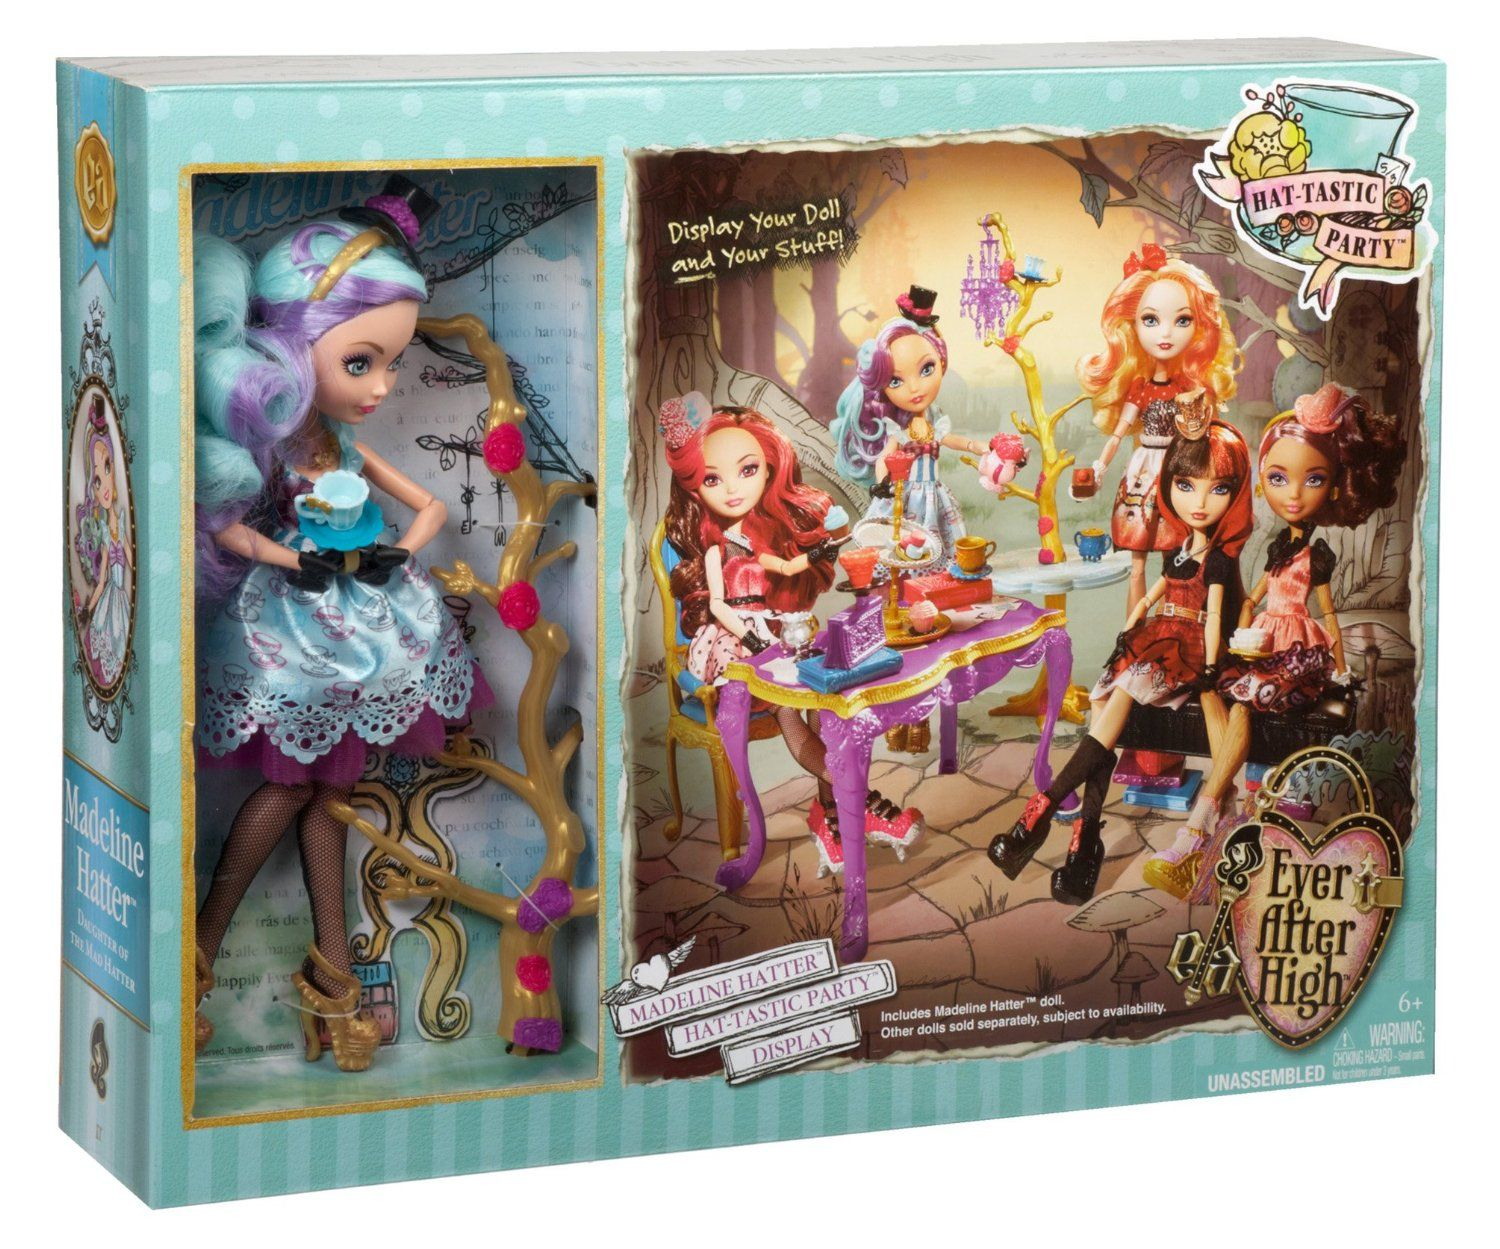 Amazon.com: Ever After High Hat-Tastic Madeline Hatter Doll and Party Display: Toys & Games